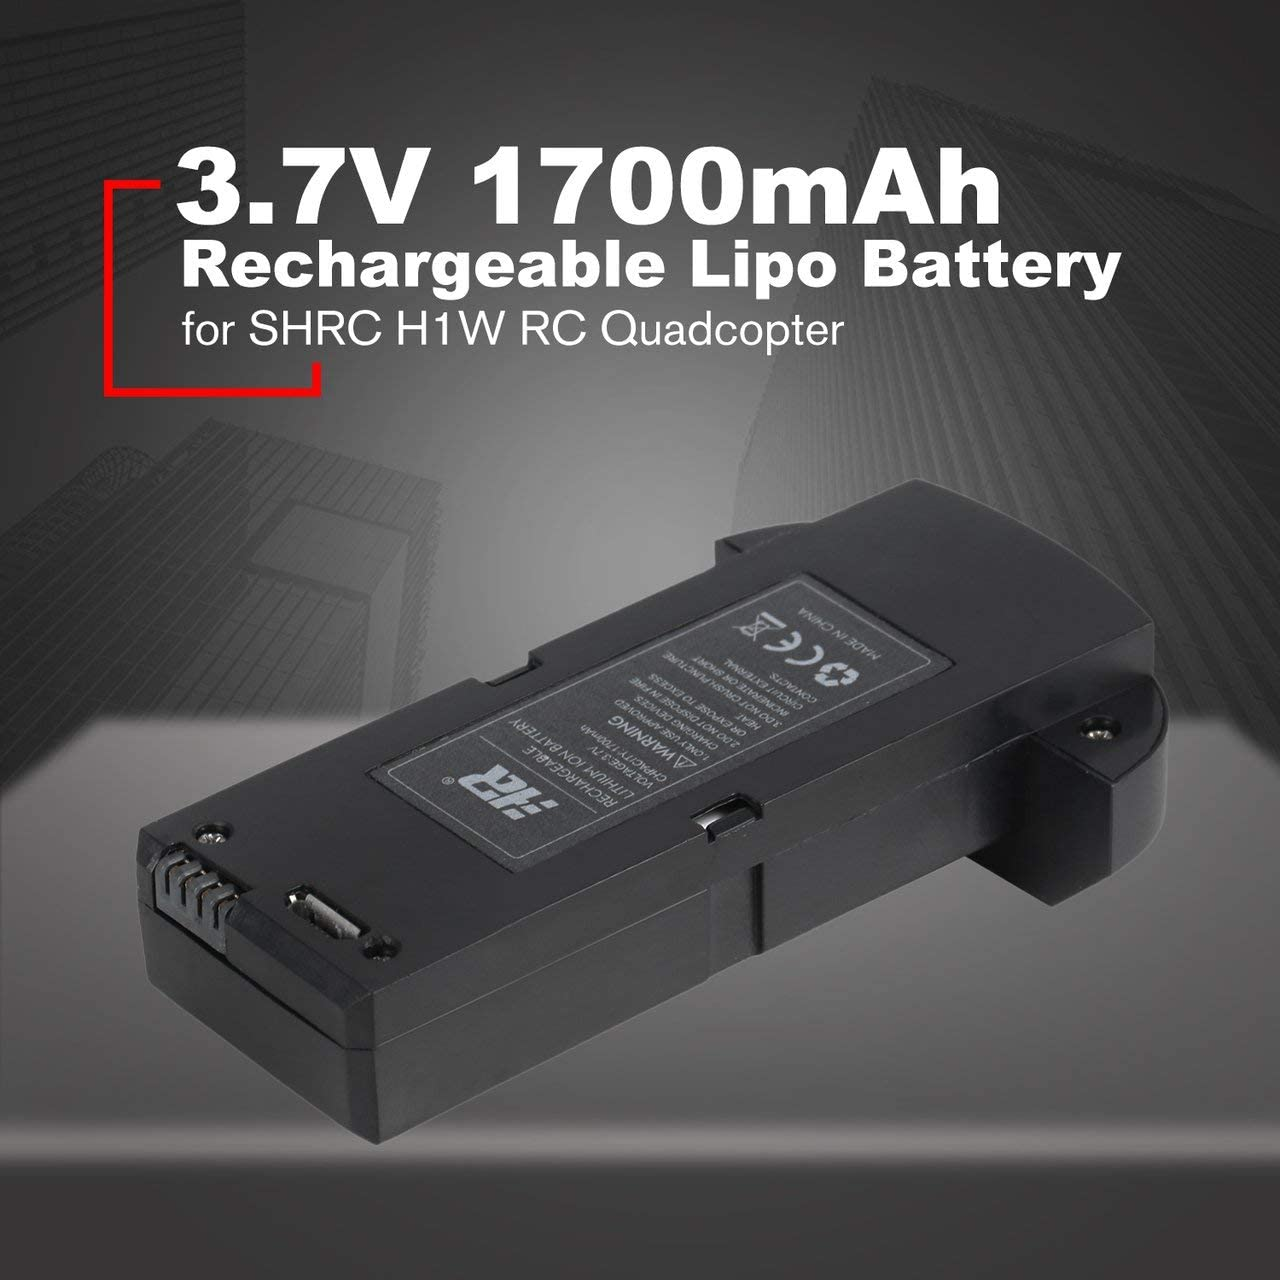 Black Jasnyfall 3.7V 1700mAh Rechargeable Lipo Battery for SHRC H1W RC Quadcopter Spare Parts RC Drone Lithium-ion Battery Black